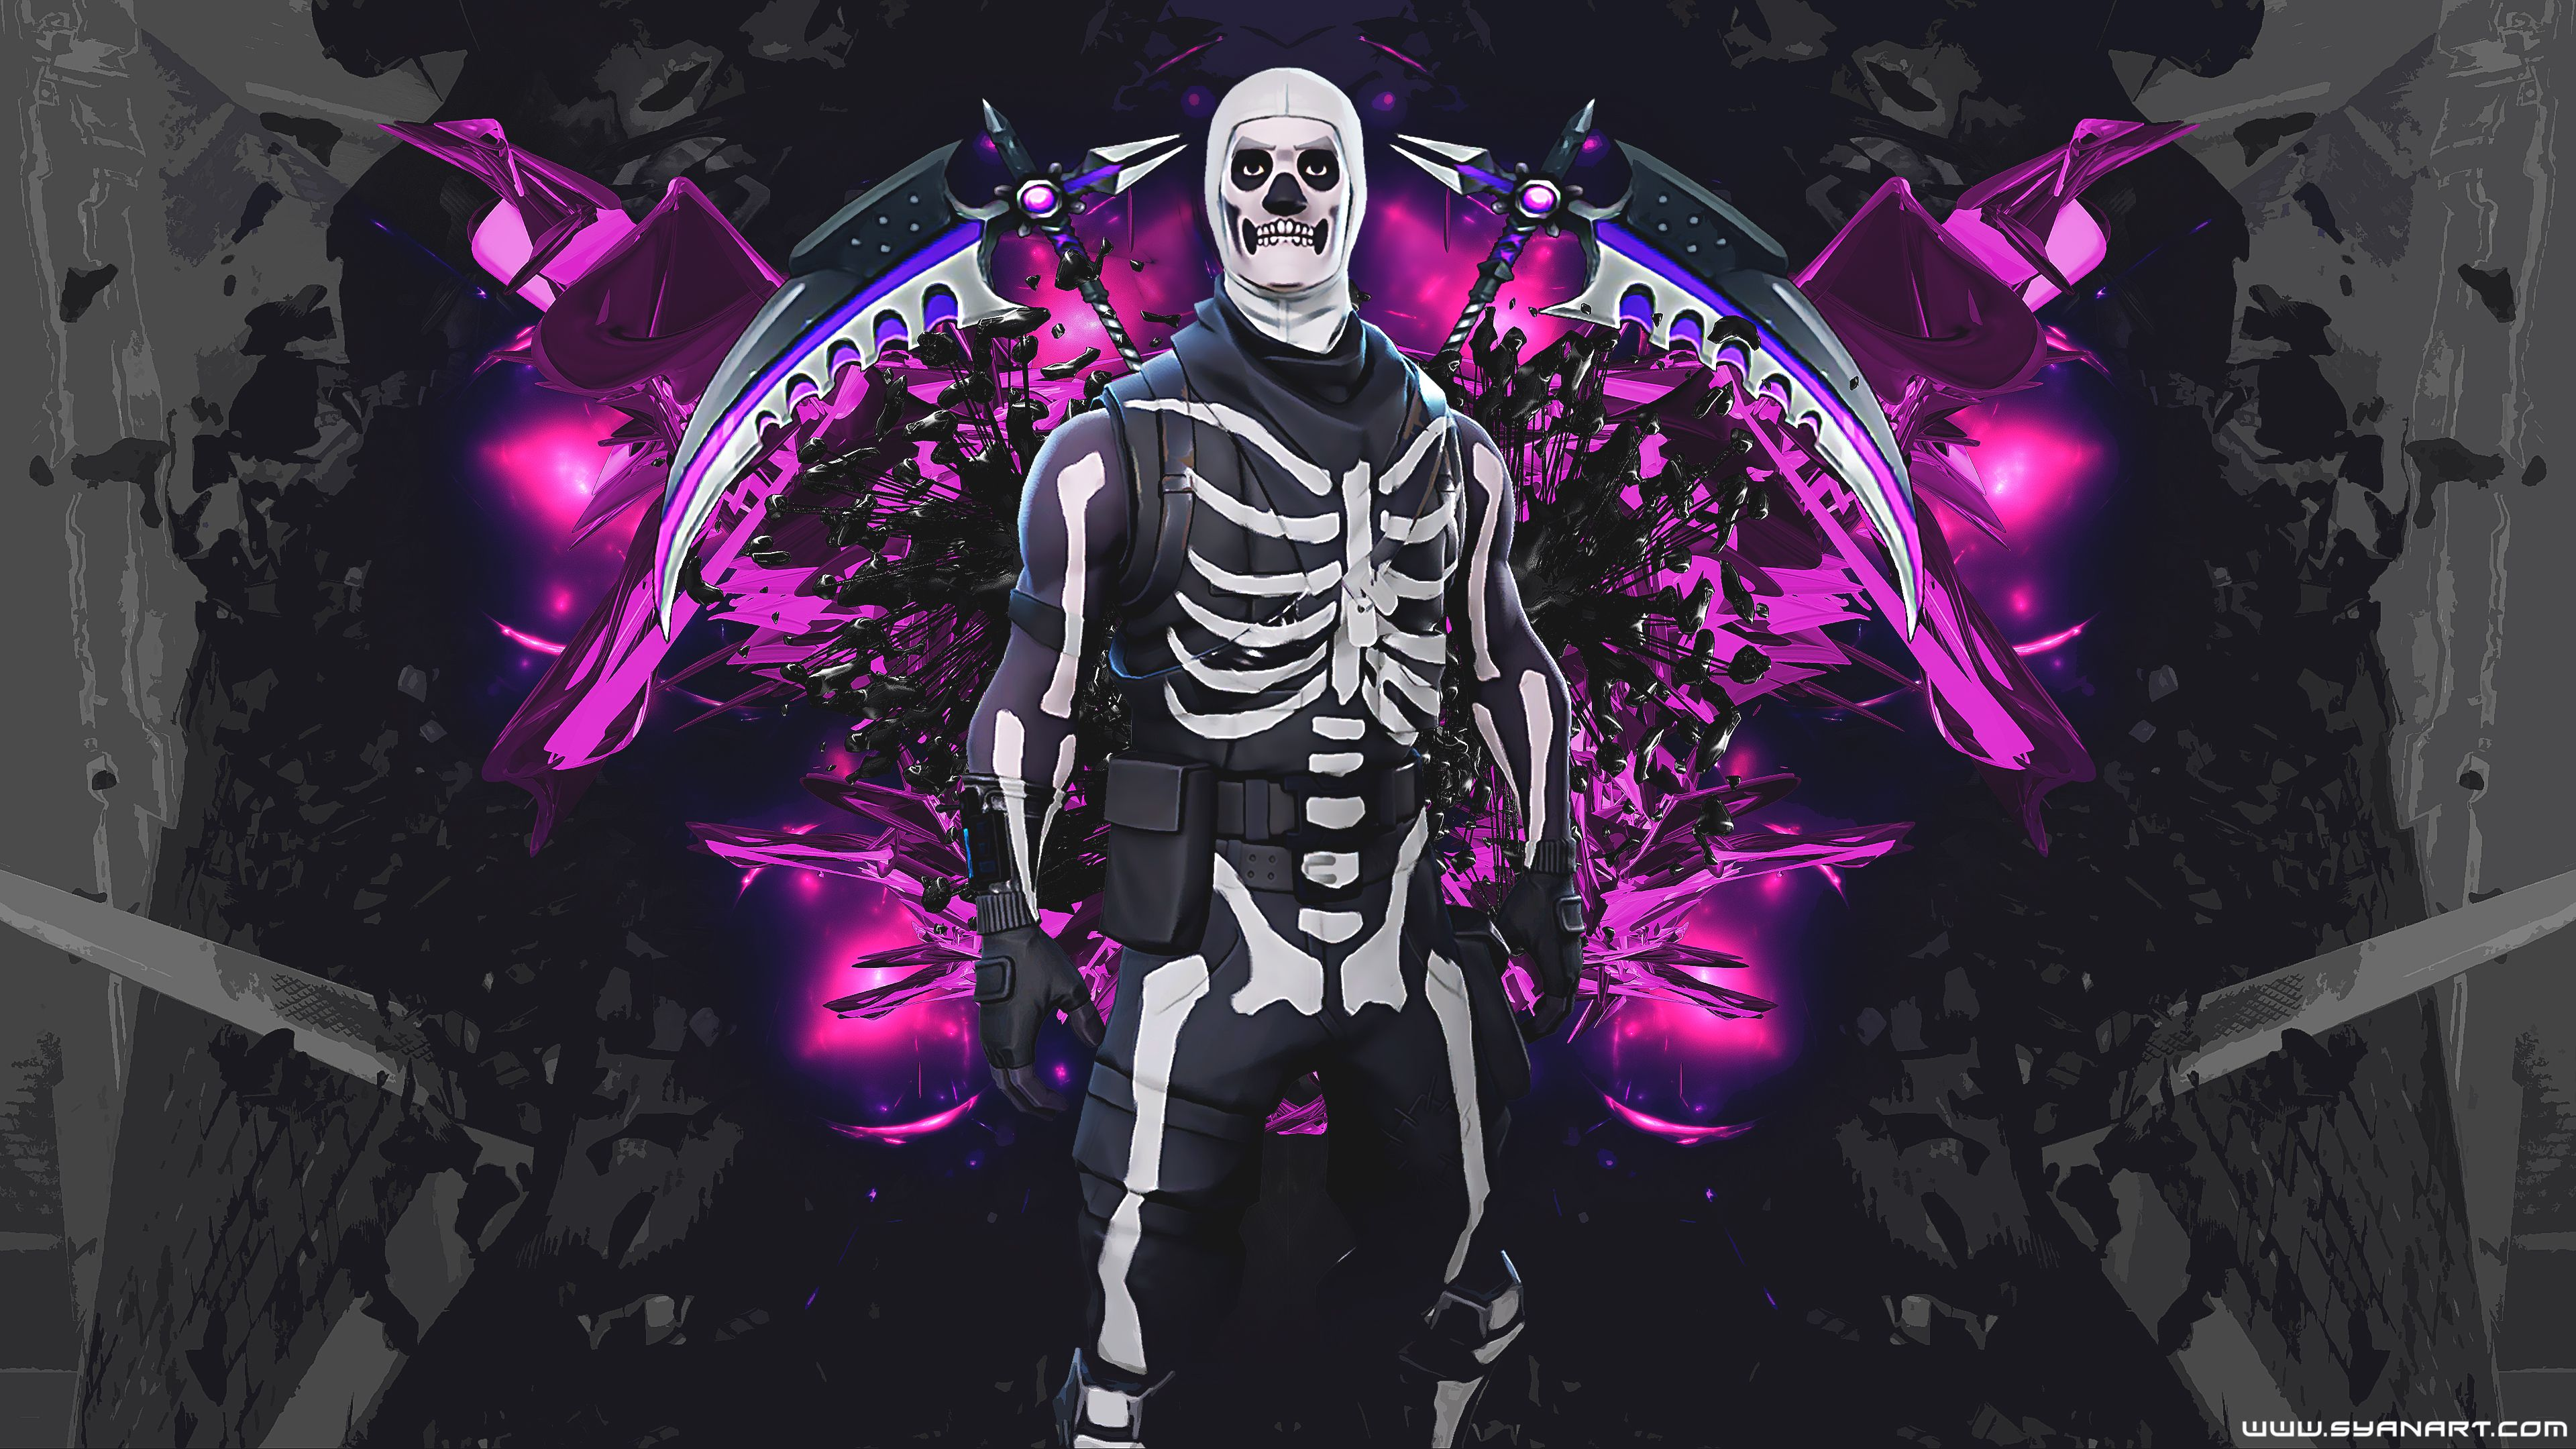 3840x2160 Fortnite Skull Trooper 4K Wallpaper - SyanArt Station SyanArt Station